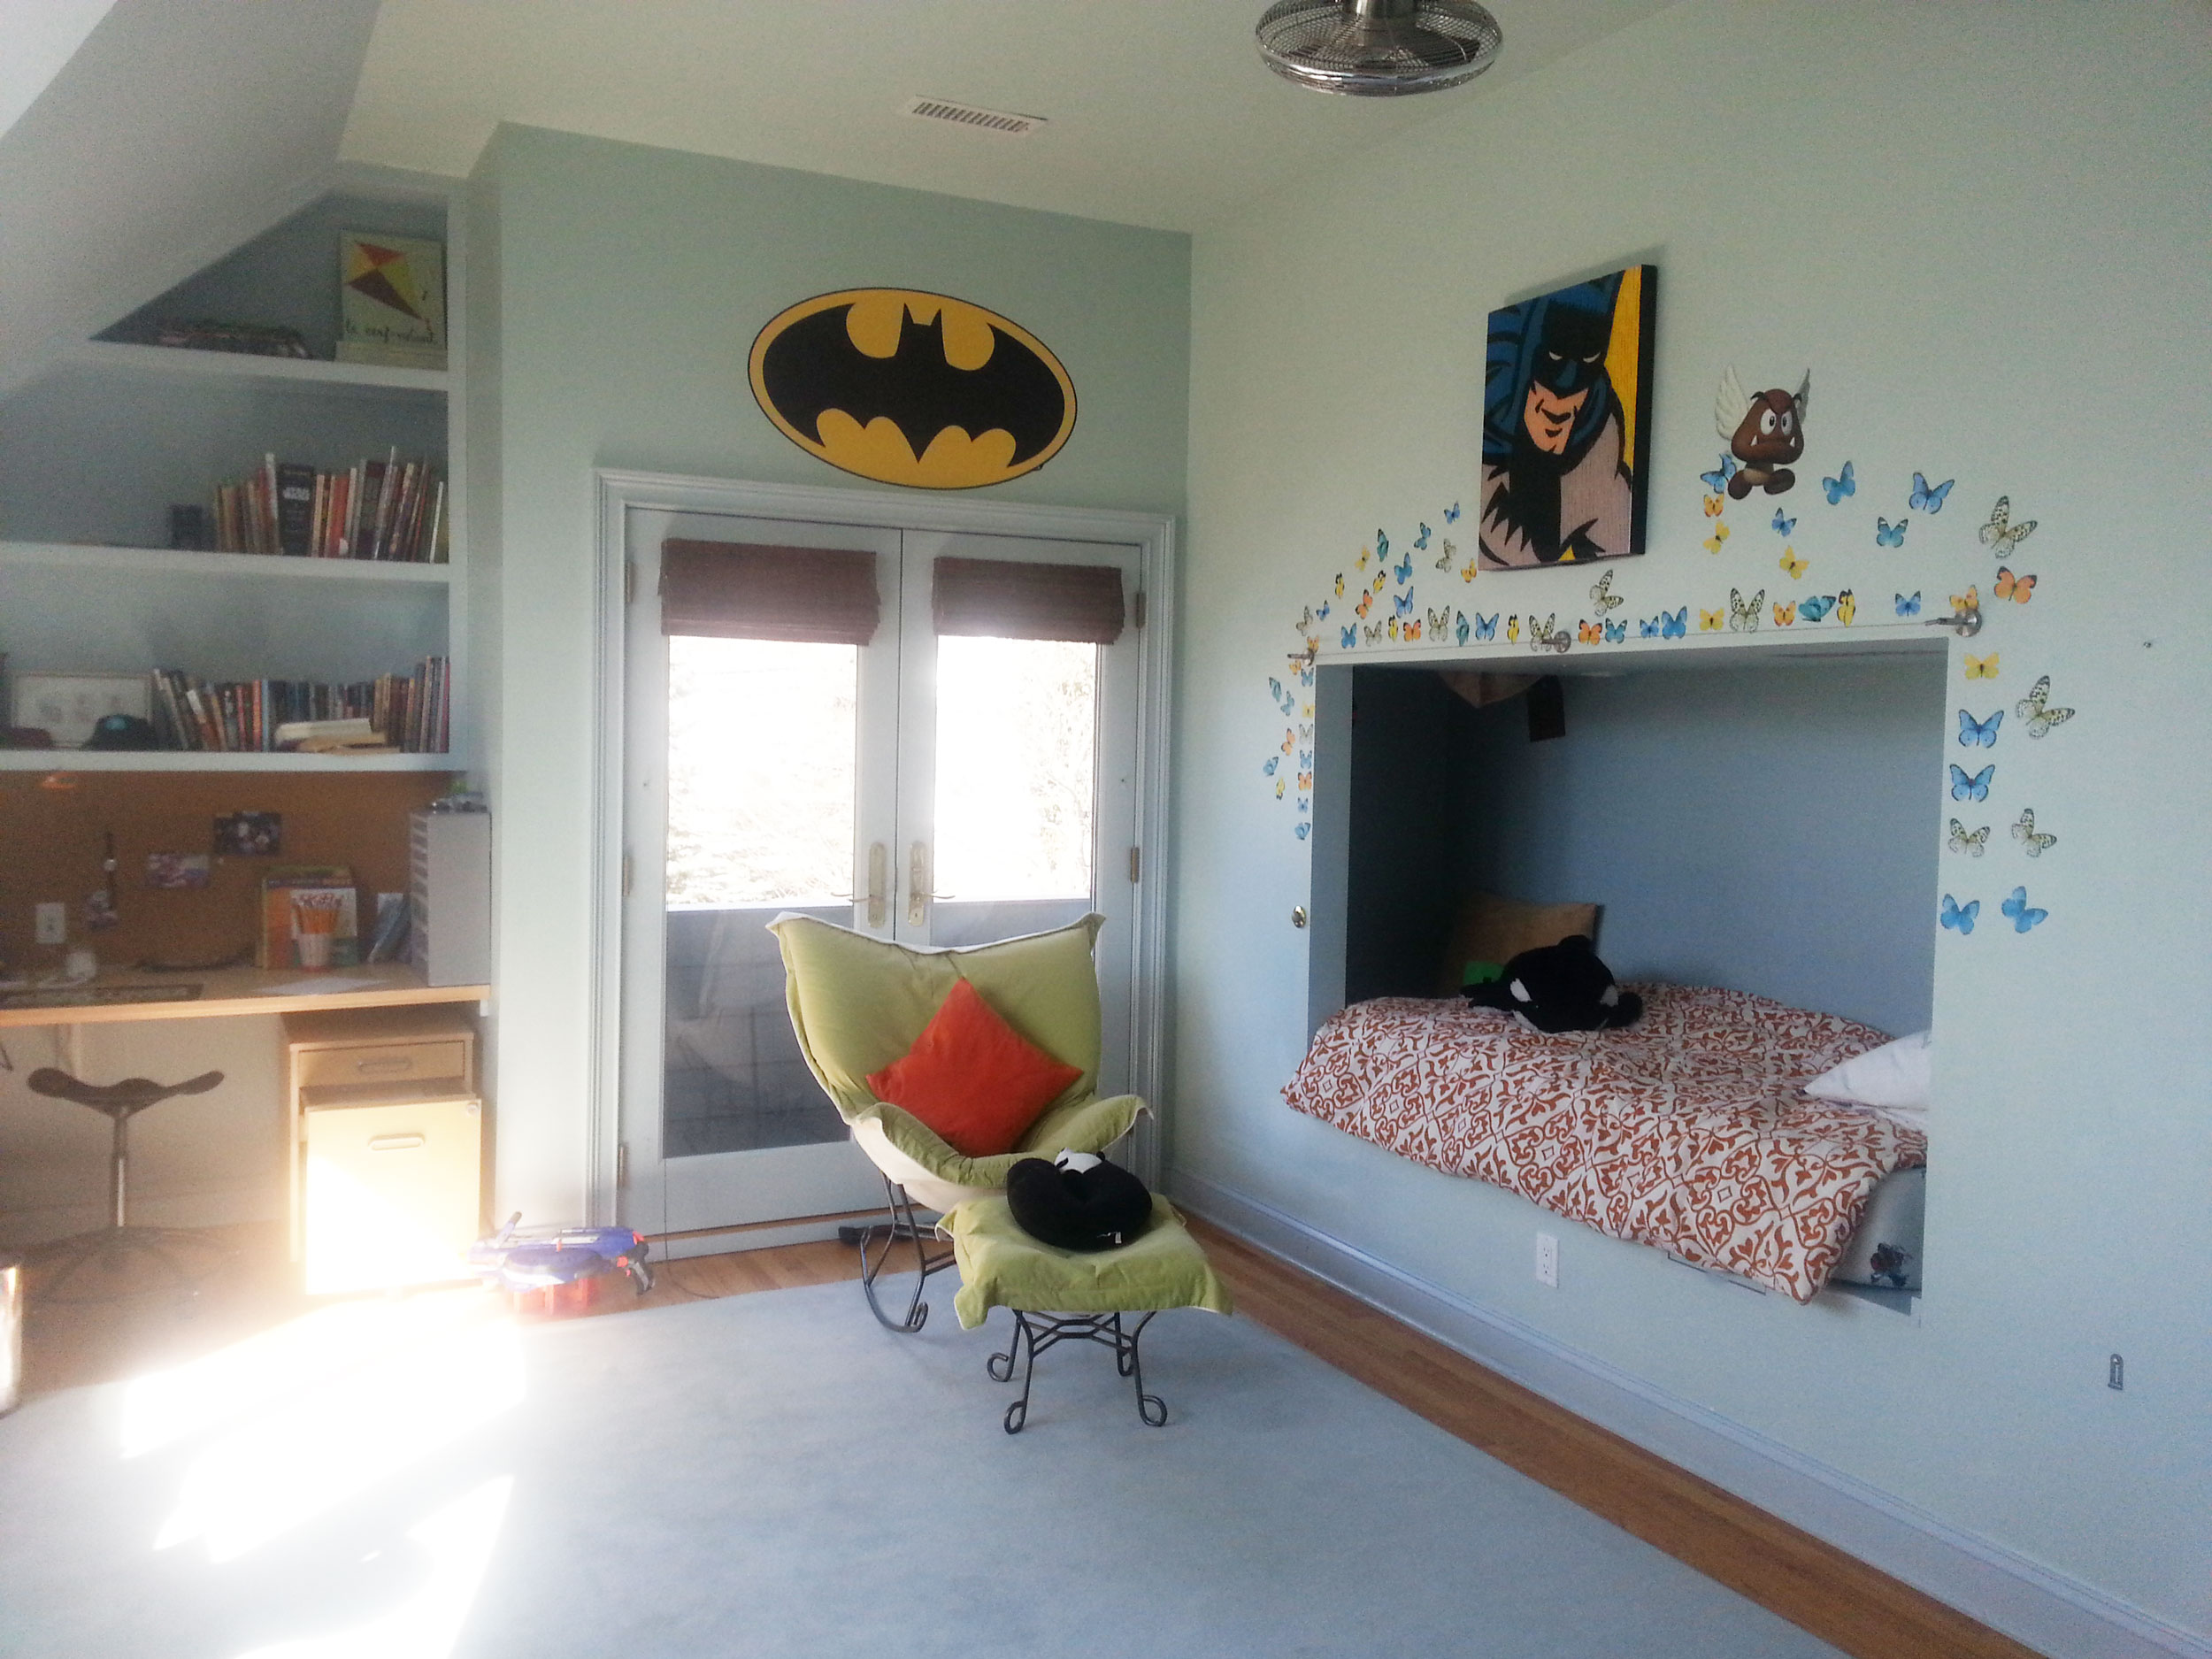 westport-green-renovation-batman.jpg